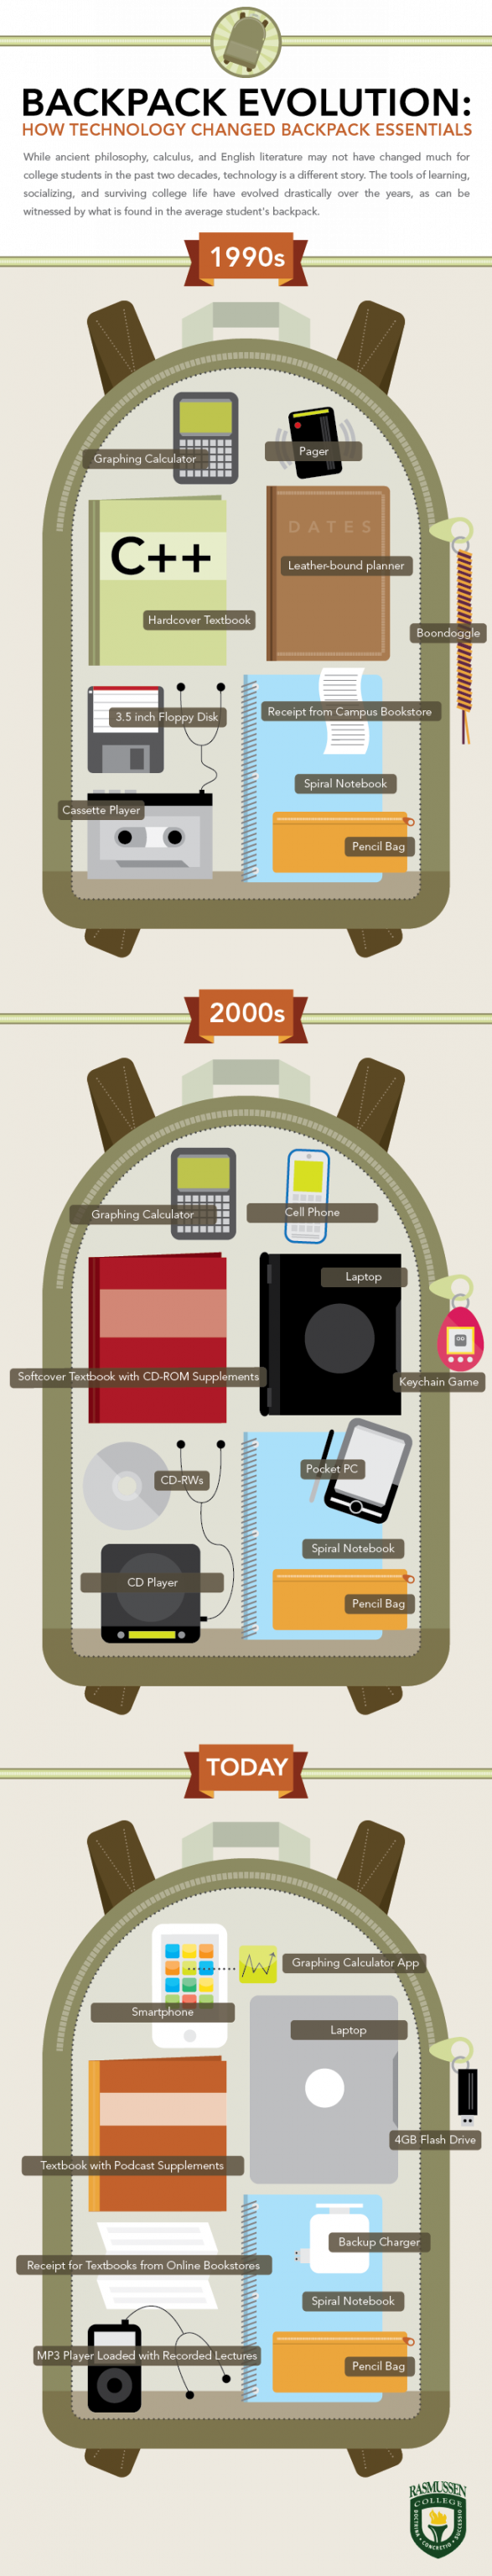 Backpack Evolution: How Technology Changed Backpack Essentials